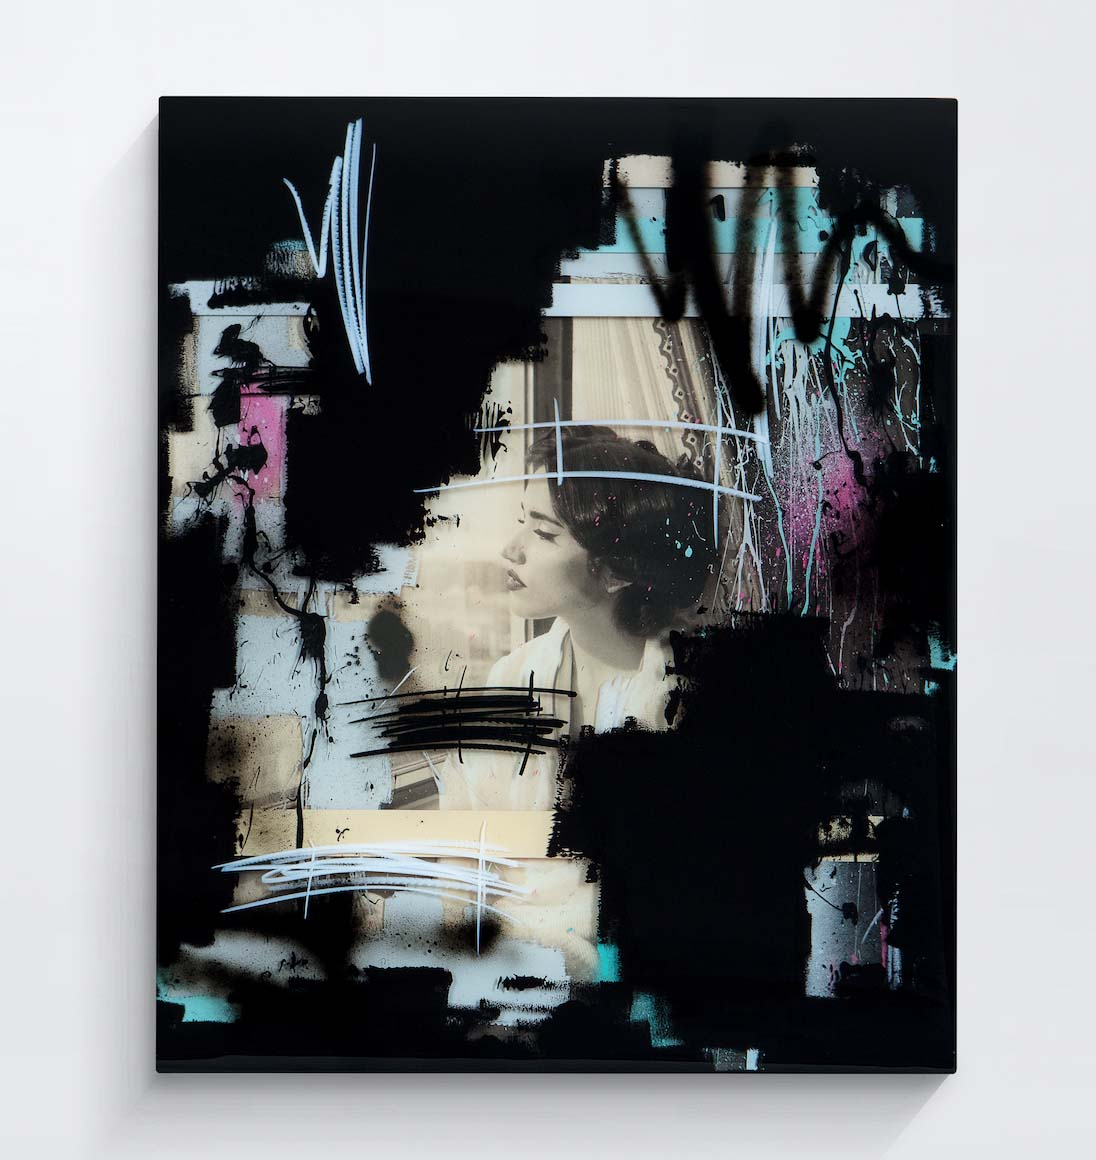 Jeremy-Brown-Dday-dream-_-25_-x-30_-_-acrylic-aerosol-and-oil-stick-between-layers-of-epoxy-resin-on-mounted-photograph